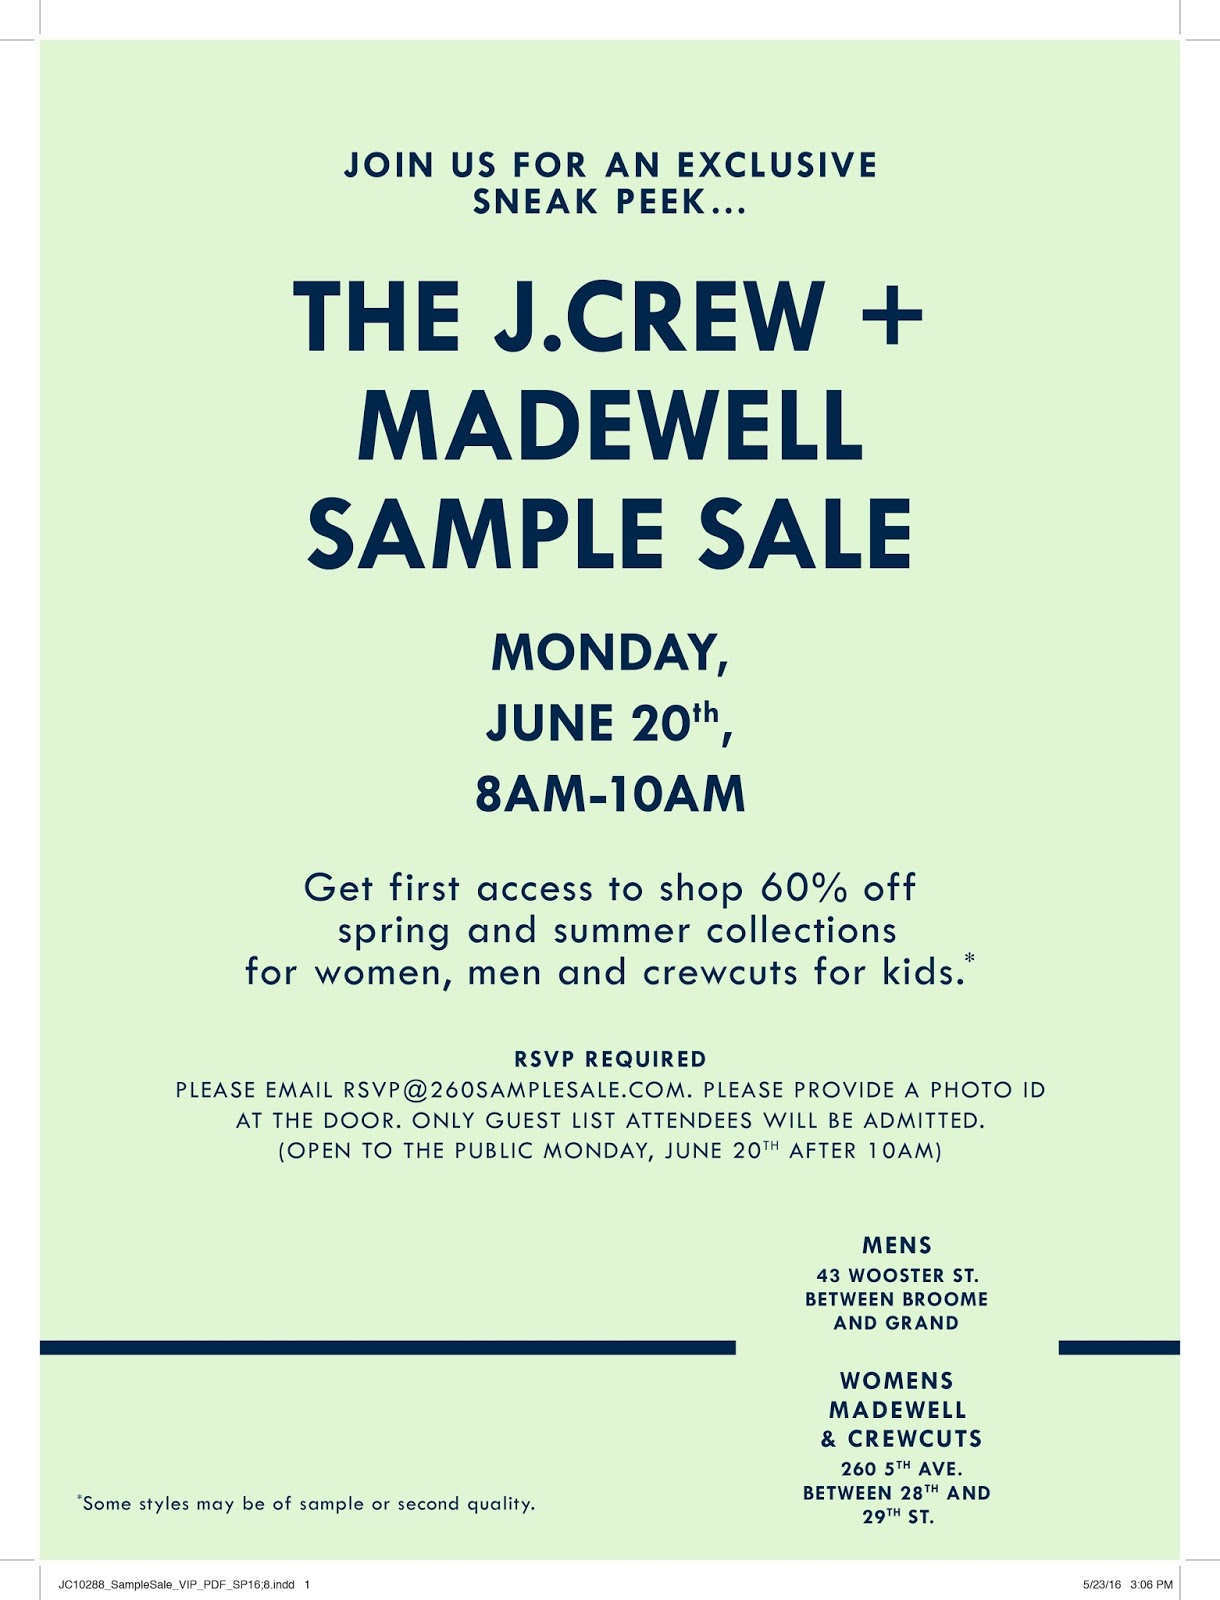 fashionably petite: J.Crew + Madewell Sample Sale - 6/20 - 6/26/16